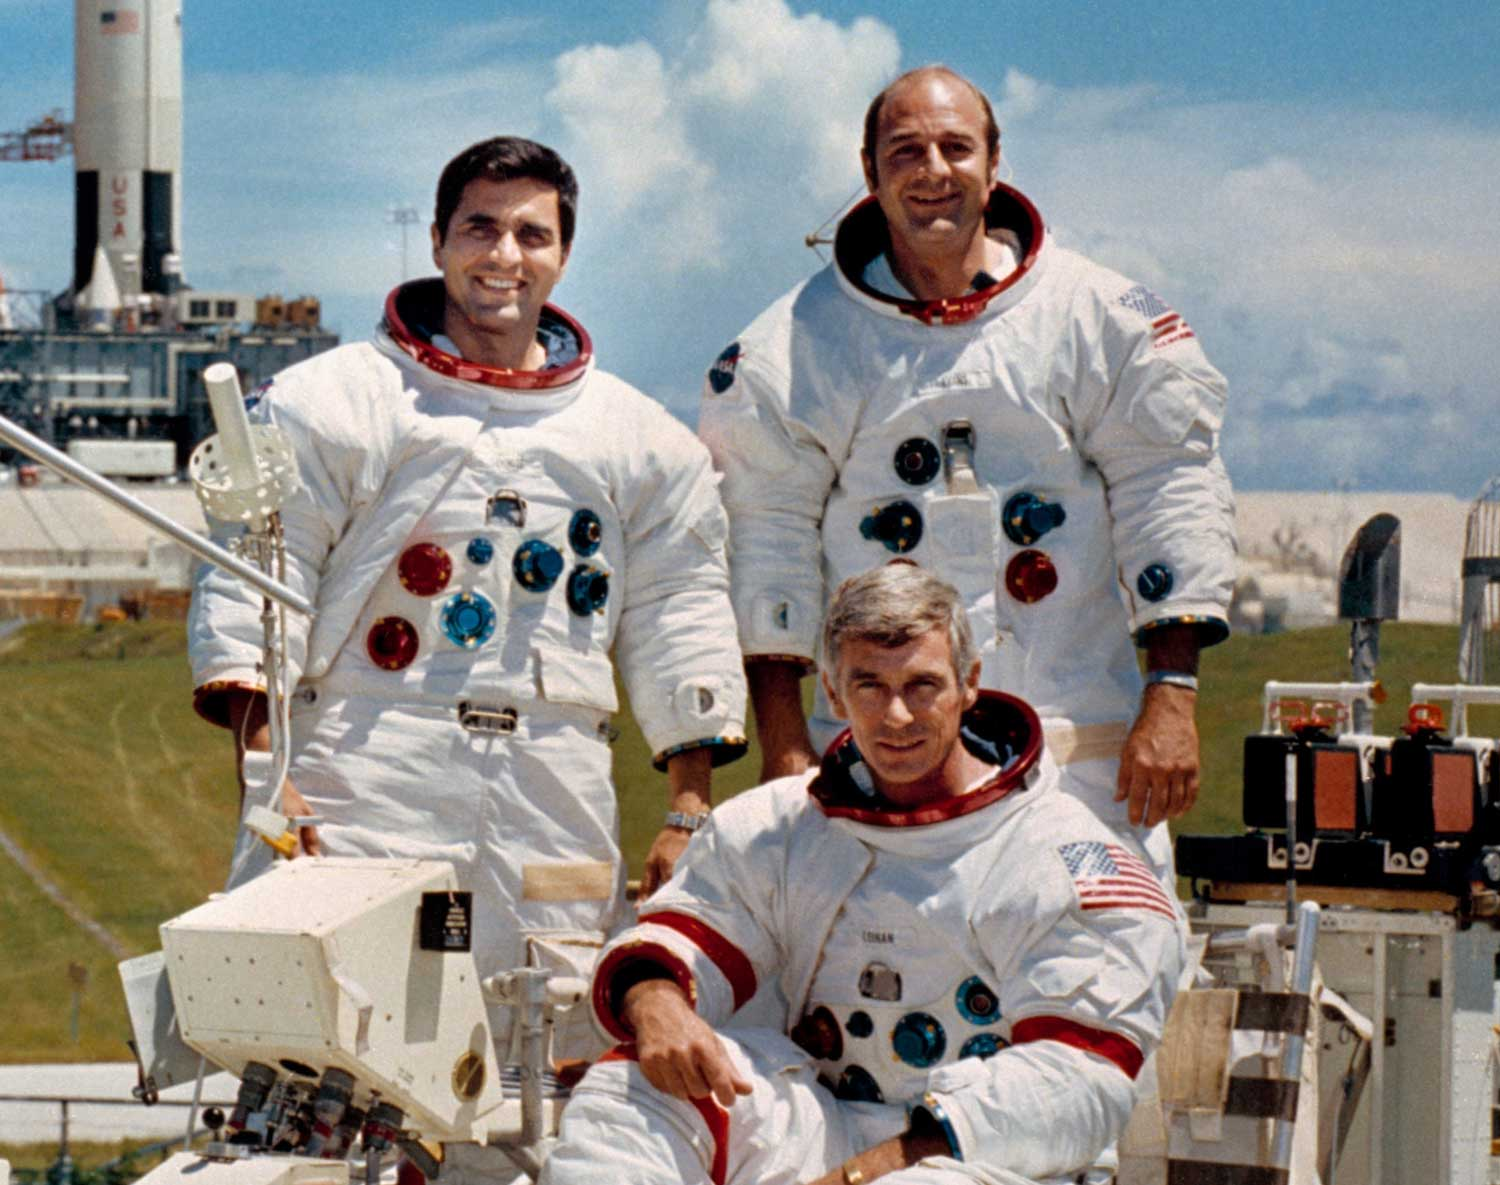 The crew of the Apollo 17 spaceflight, the last of the program. Pictured left to right are: Harrison H. Schmitt, Eugene A. Cernan (seated) and Ronald E. Evans